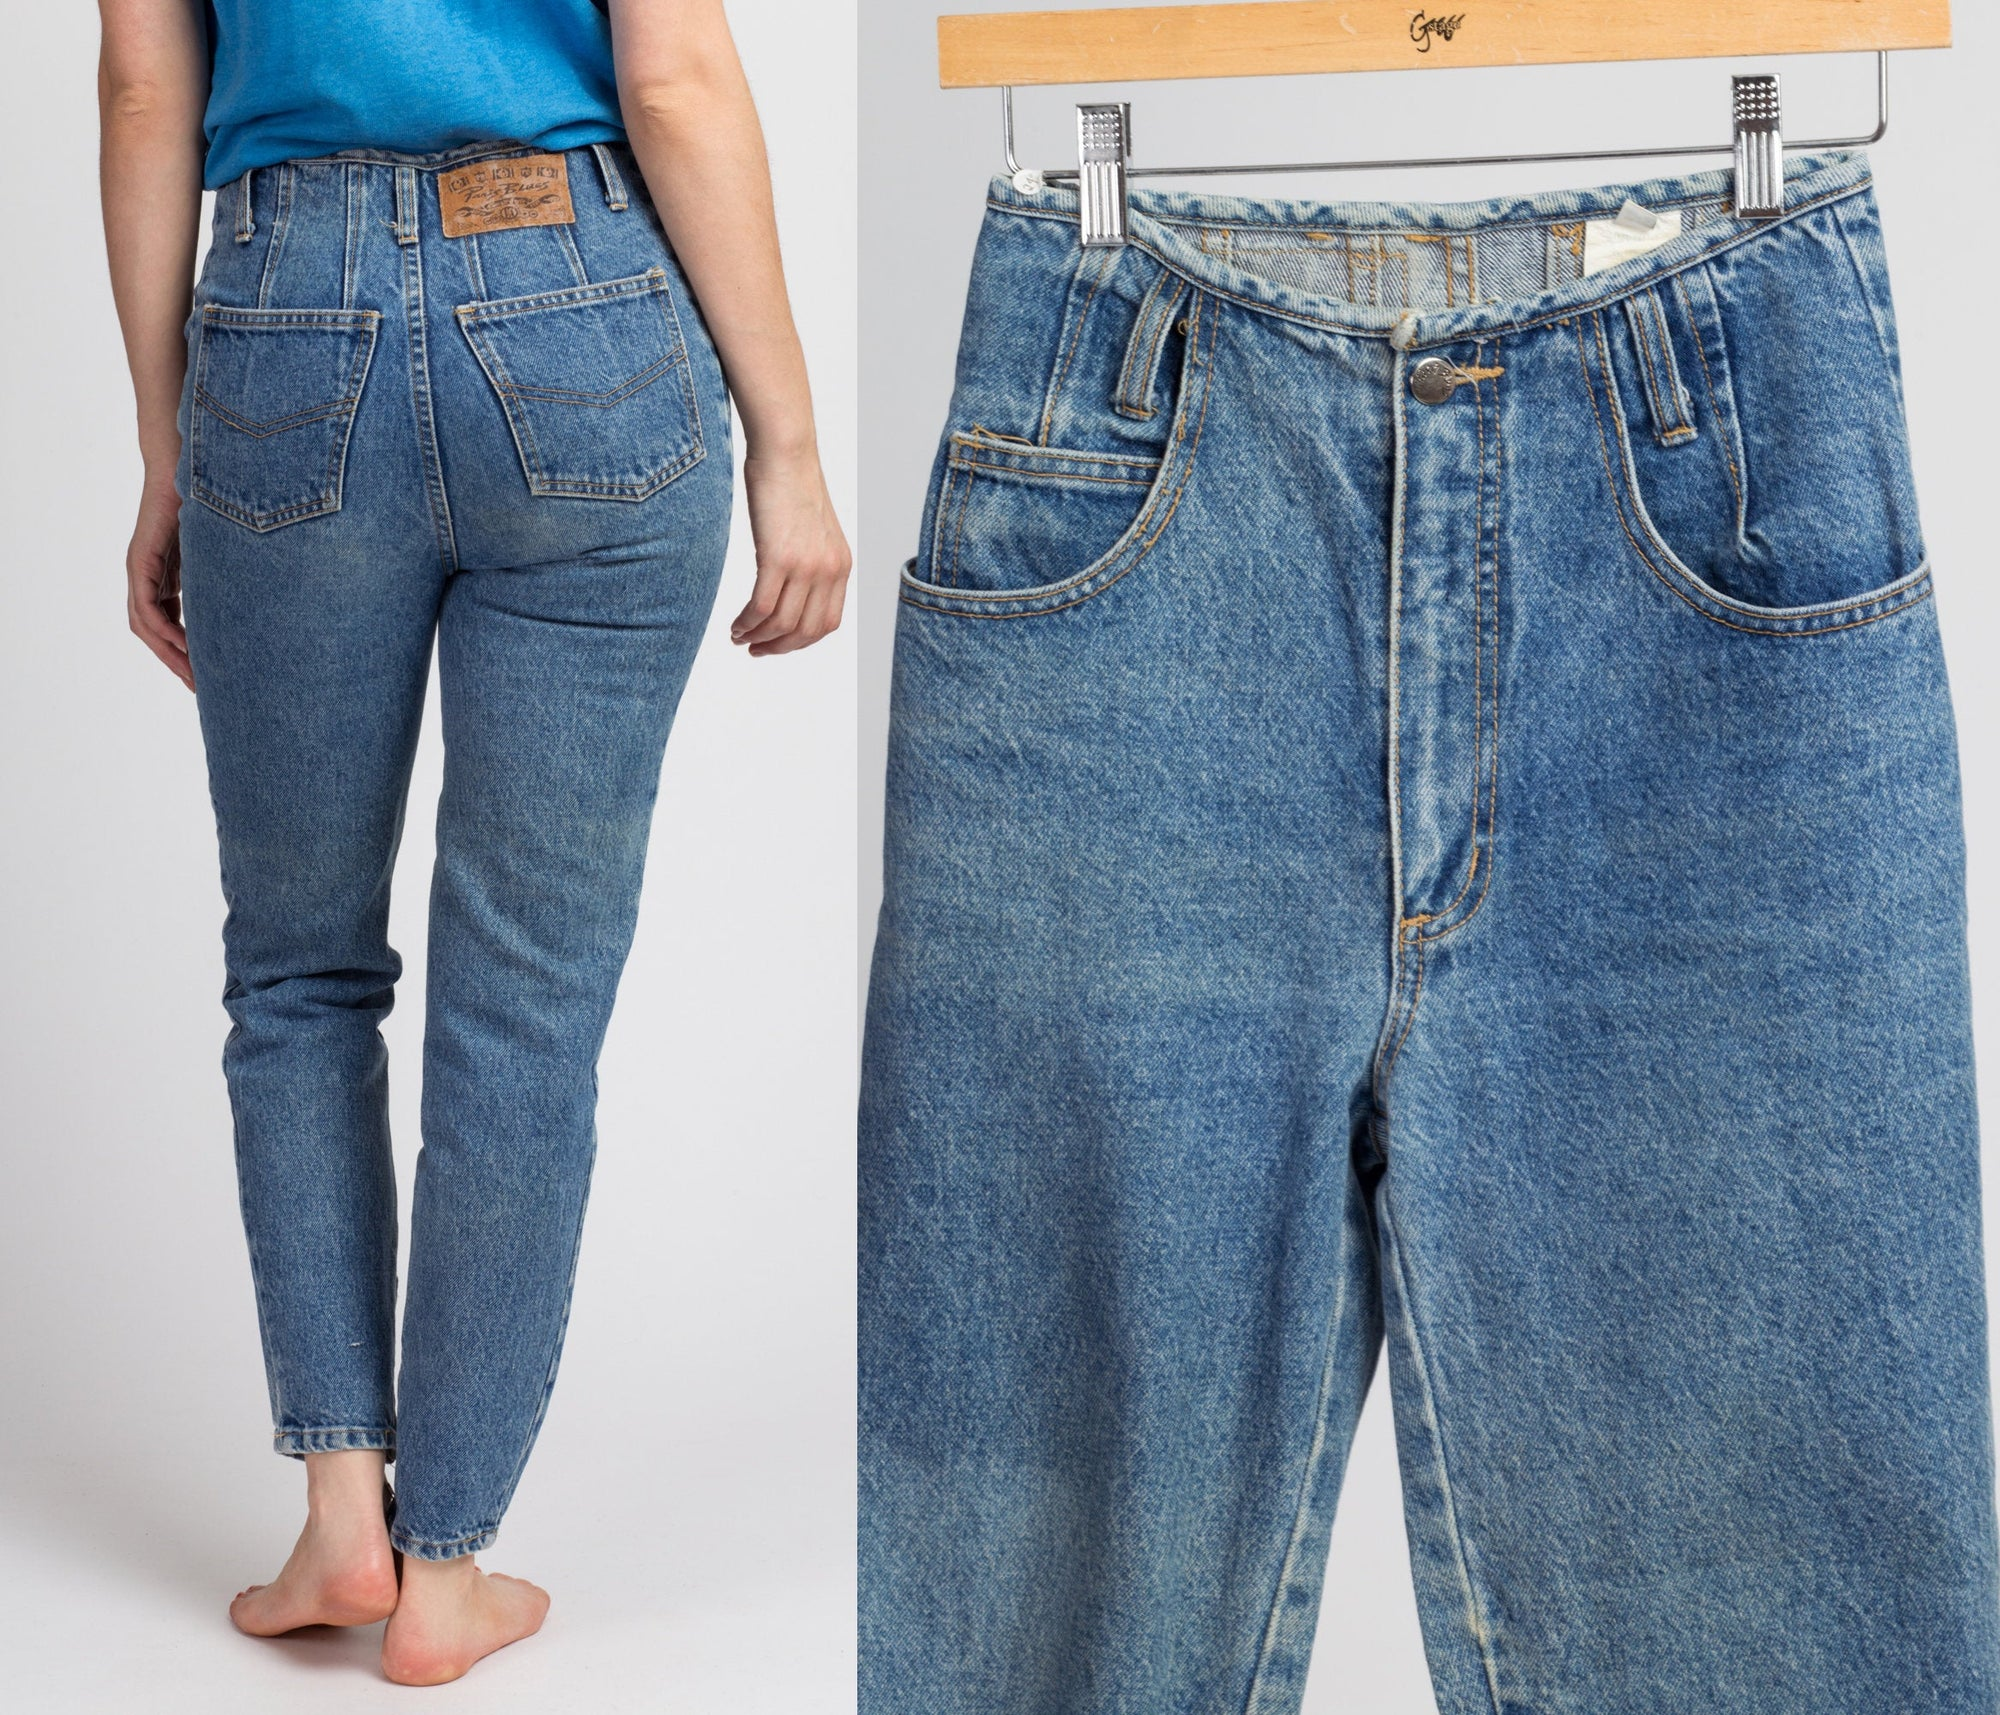 90s Paris Blues High Waist Streetwear Jeans - Extra Small